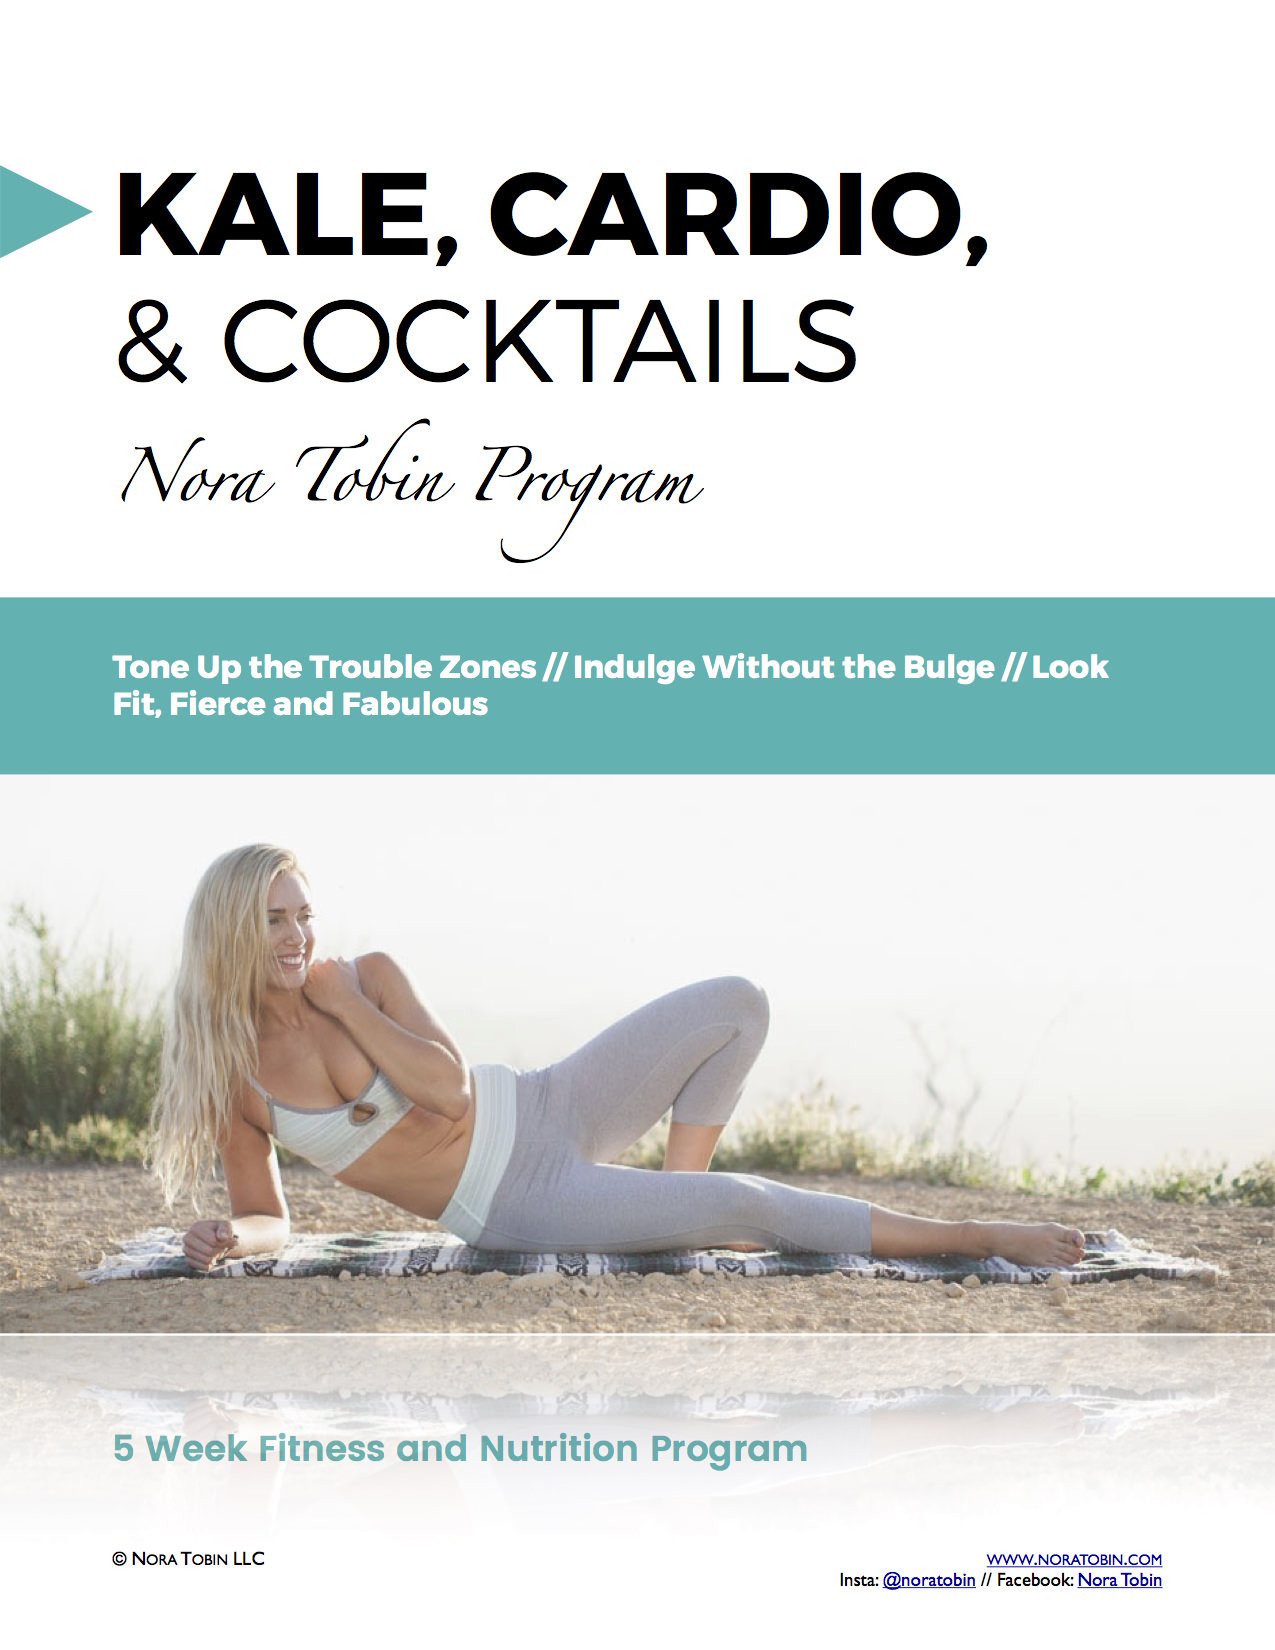 Kale-Cardio-and-Cocktails-The-Full-Plan-Cover-1.jpg